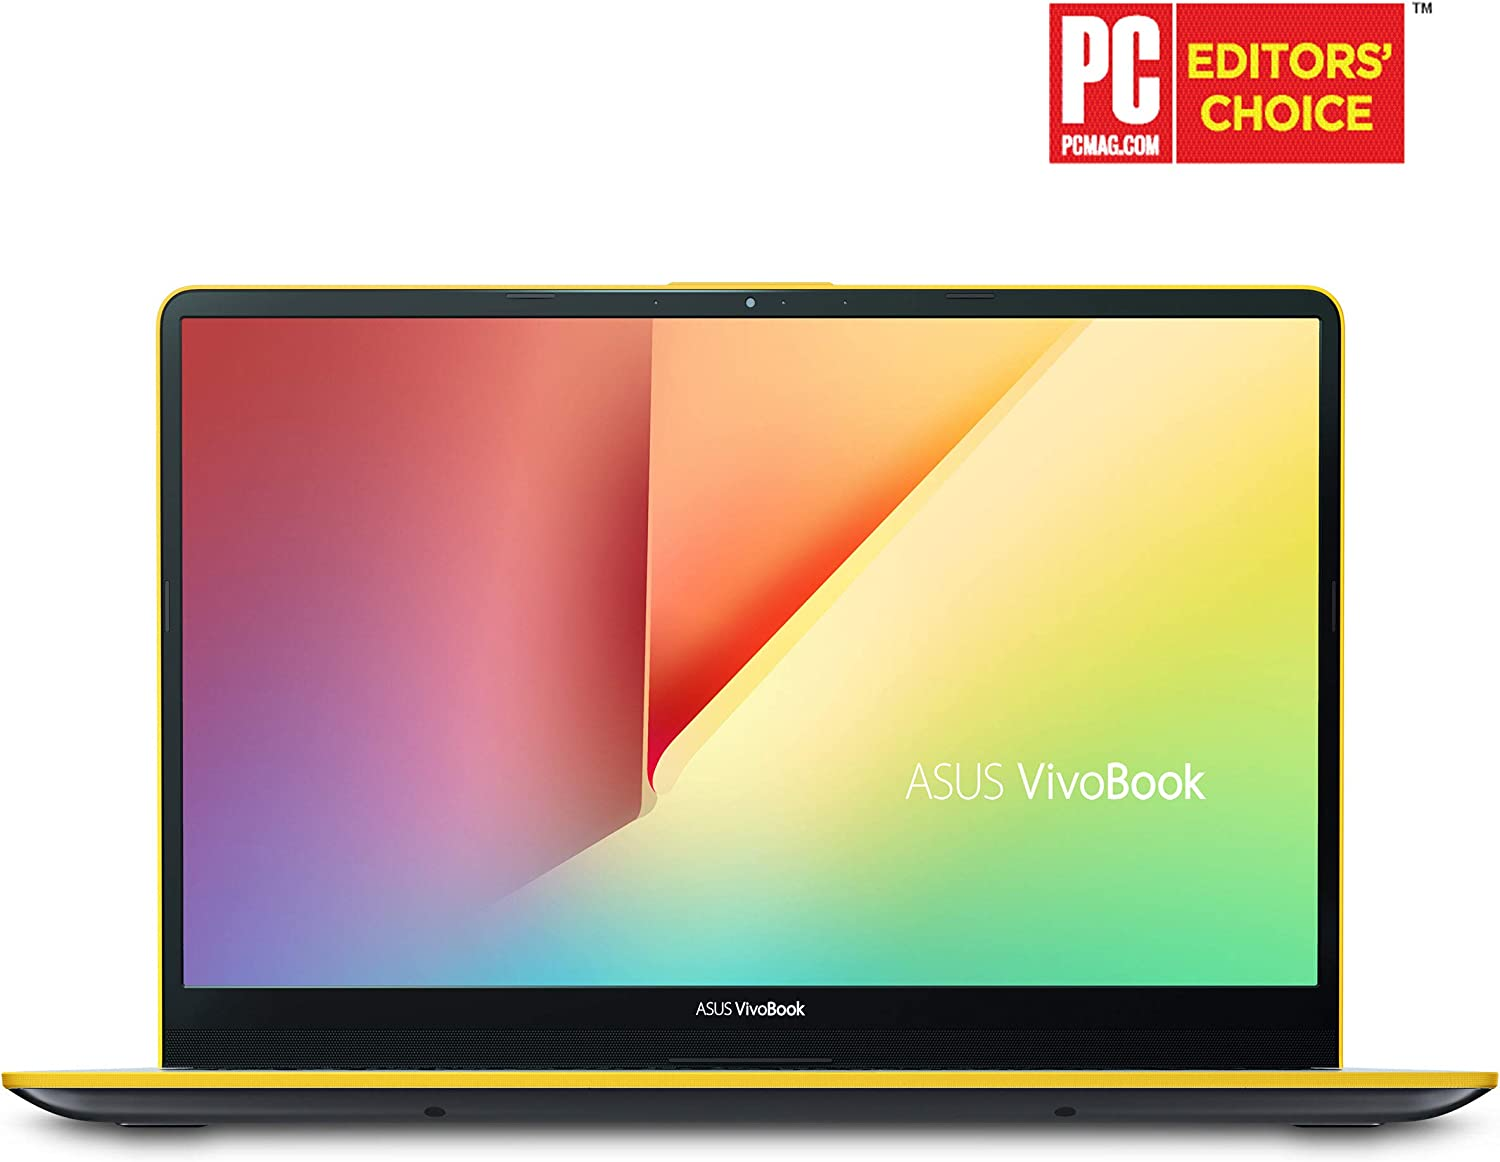 "Asus Vivobook S15 Slim and Portable Laptop, 15.6"" Full HD NanoEdge Bezel, Intel Core I5-8265U Processor, 8GB DDR4, 256GB SSD, Windows 10 - S530FA-DB51-YL, Silver Blue with Yellow Trim"